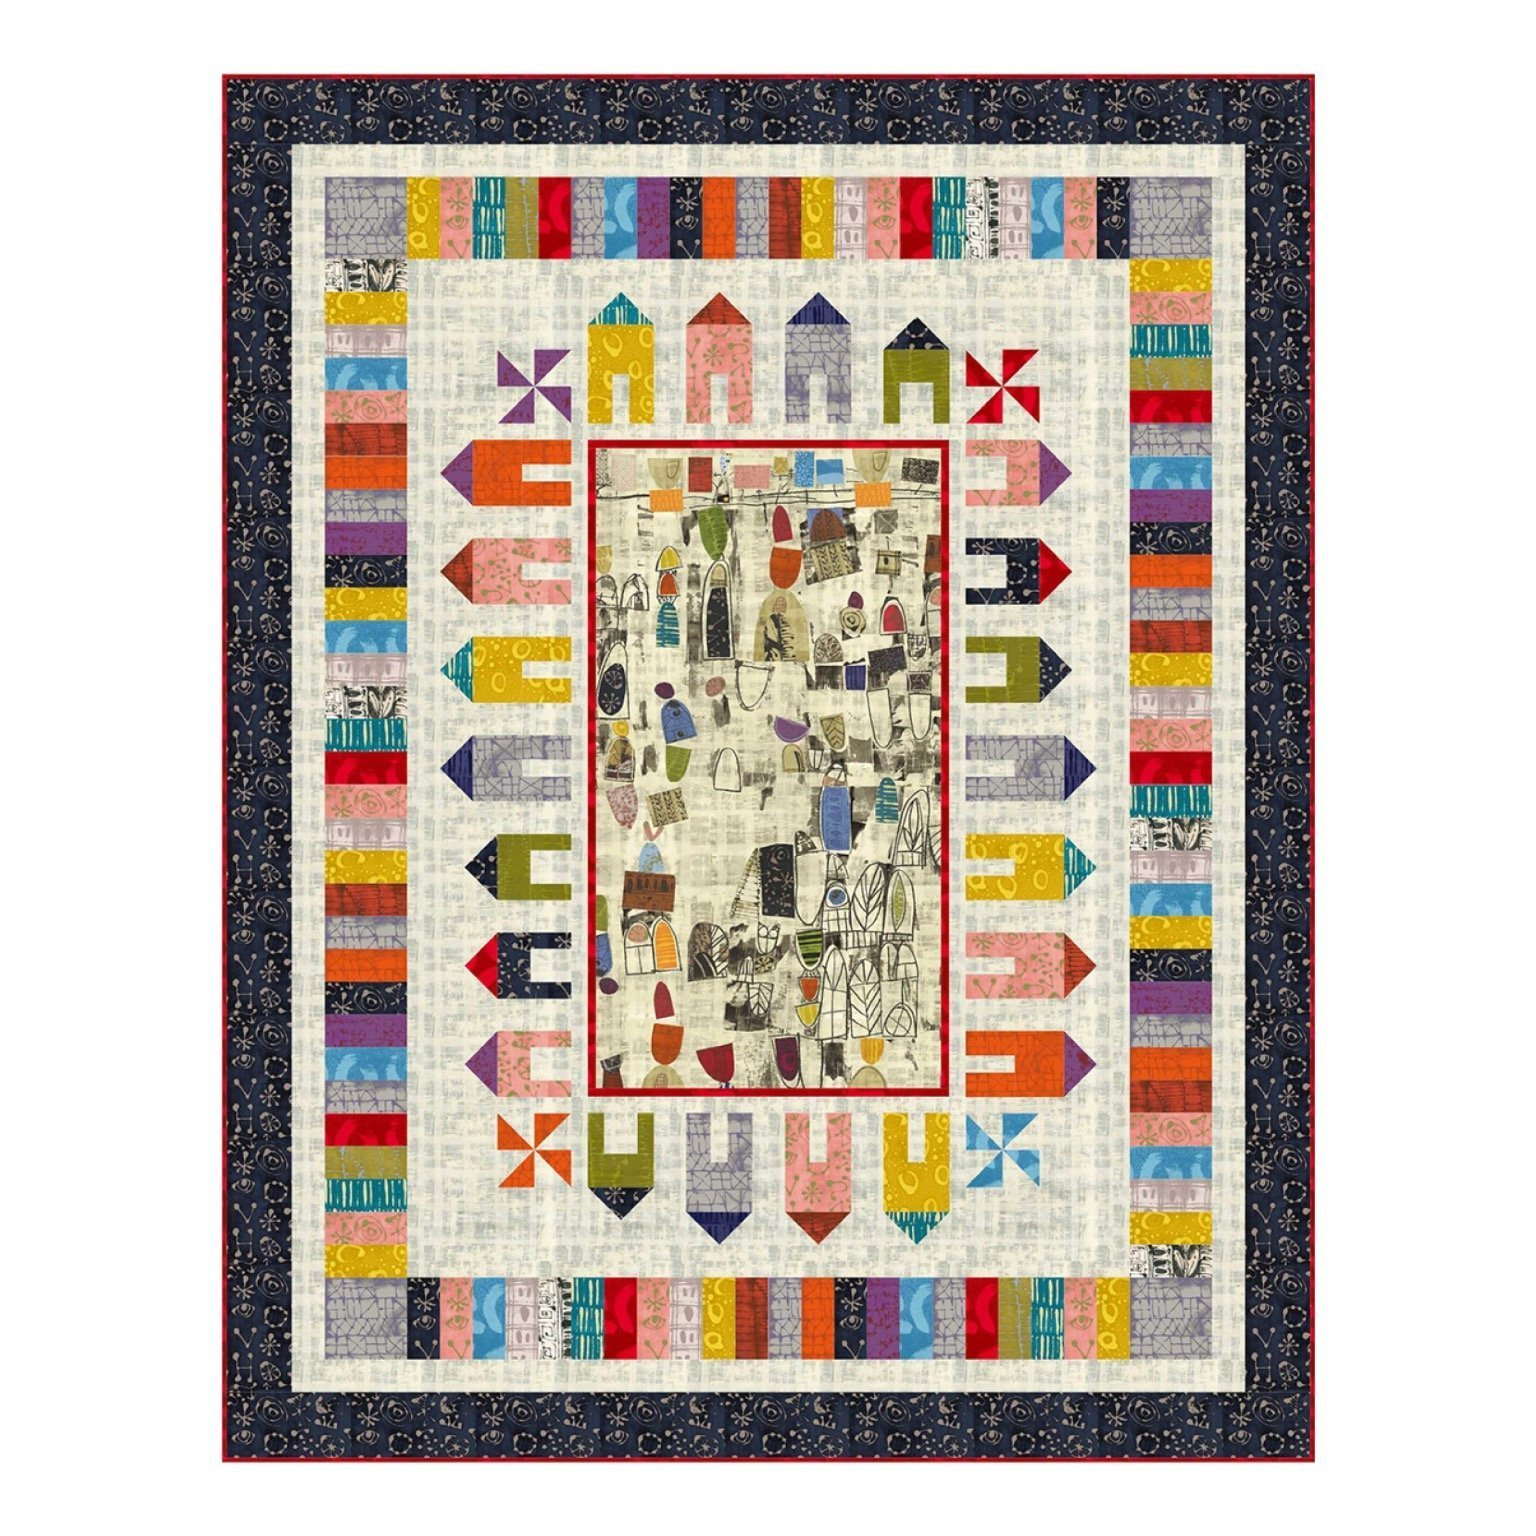 Around the Block Quilt Kit designed by Wendy Sheppard